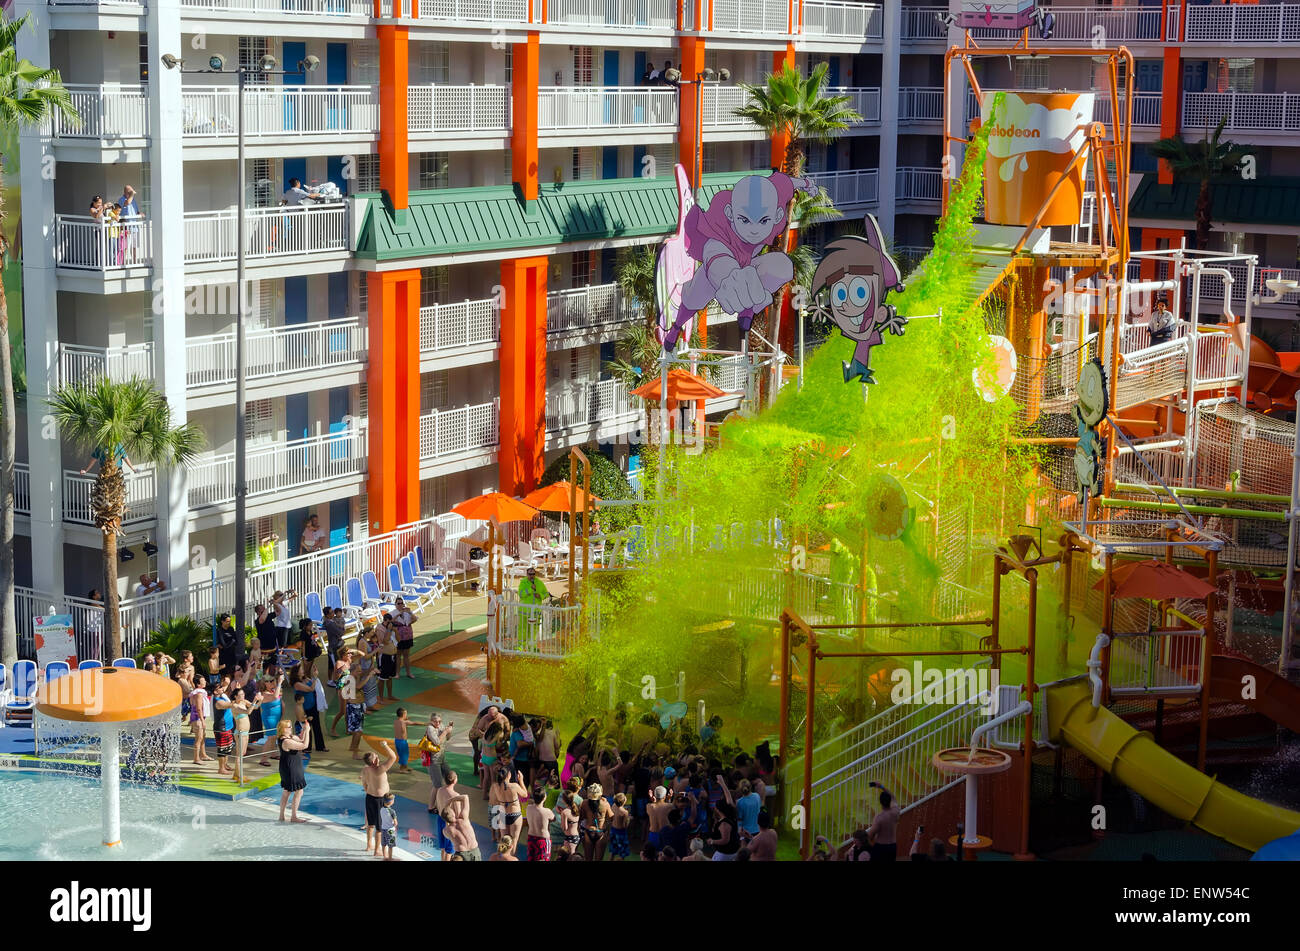 Nickelodeon Suites Hotel Nick Hotel Mass Sliming Of Swimmers At Stock Photo 82302092 Alamy